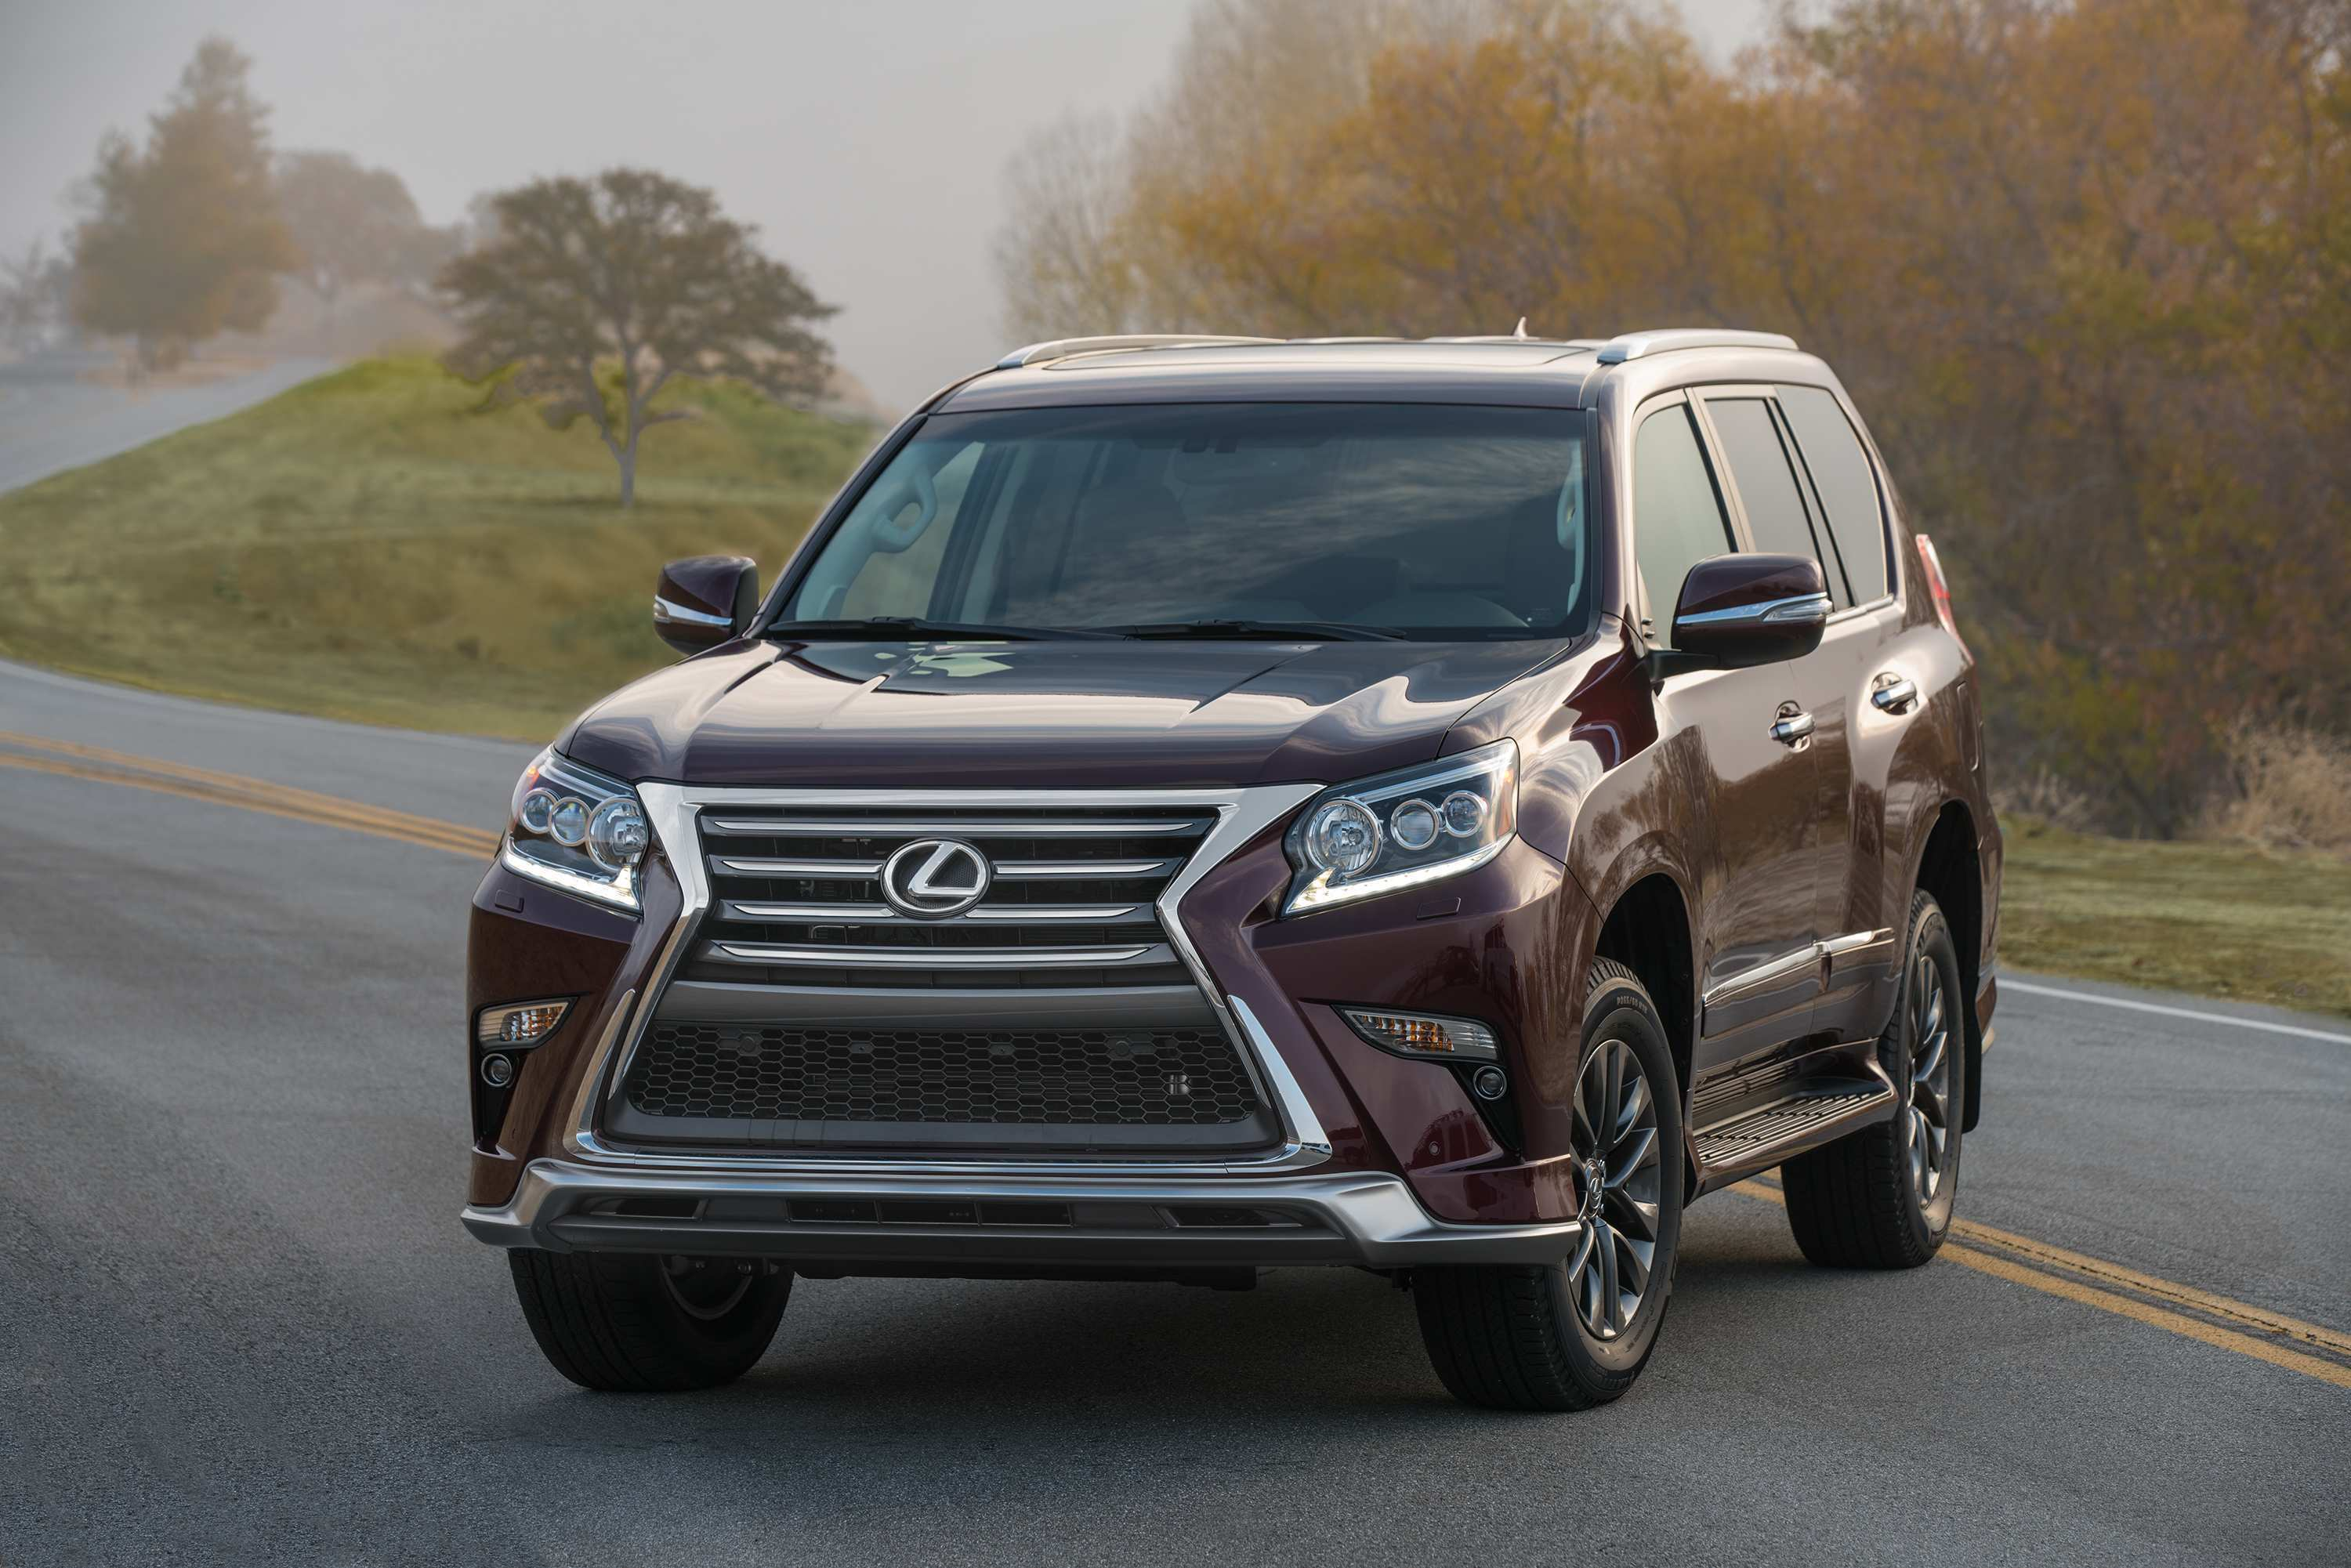 38 A 2019 Lexus Gx 460 Redesign New Review